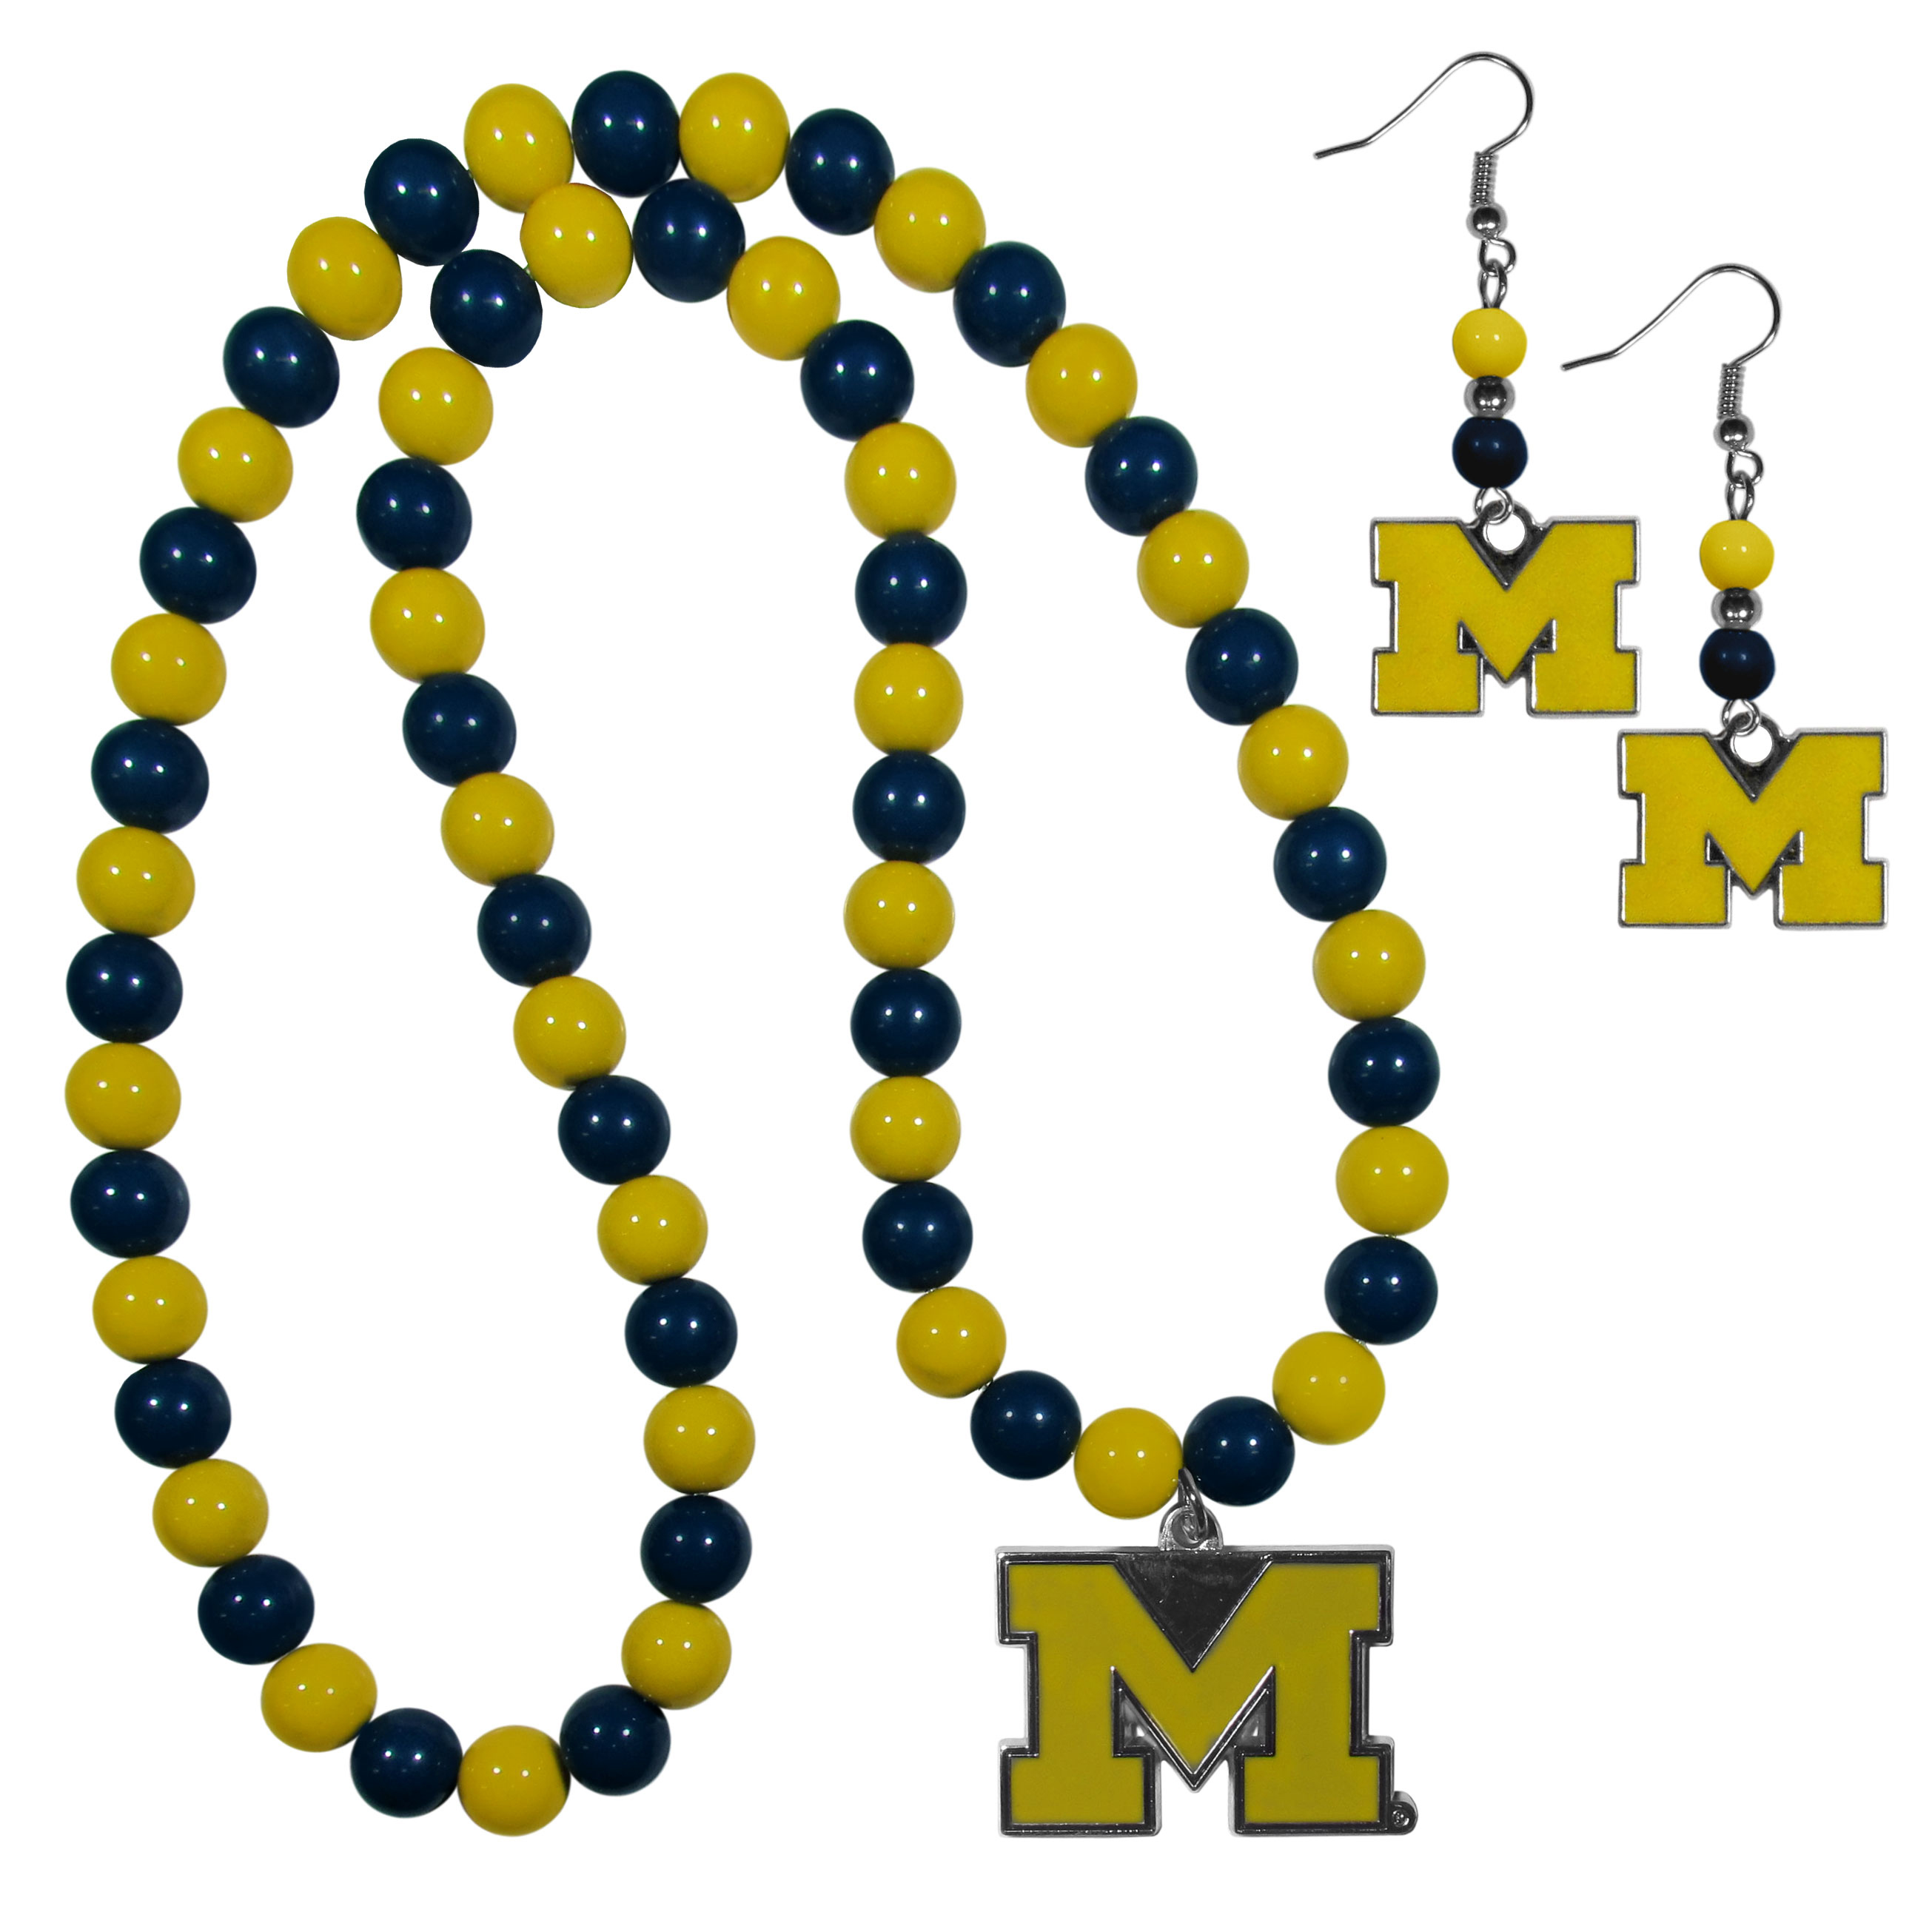 Michigan Wolverines Fan Bead Earrings and Necklace Set - These fun and colorful Michigan Wolverines fan bead jewelry pieces are an eyecatching way to show off your team spirit. The earrings feature hypoallergenic, nickel free fishhook post and 2 team colored beads with a beautifully carved team charm to finish this attractive dangle look. The mathcing bracelet has alternating team colored beads on a stretch cord and features a matching team charm.